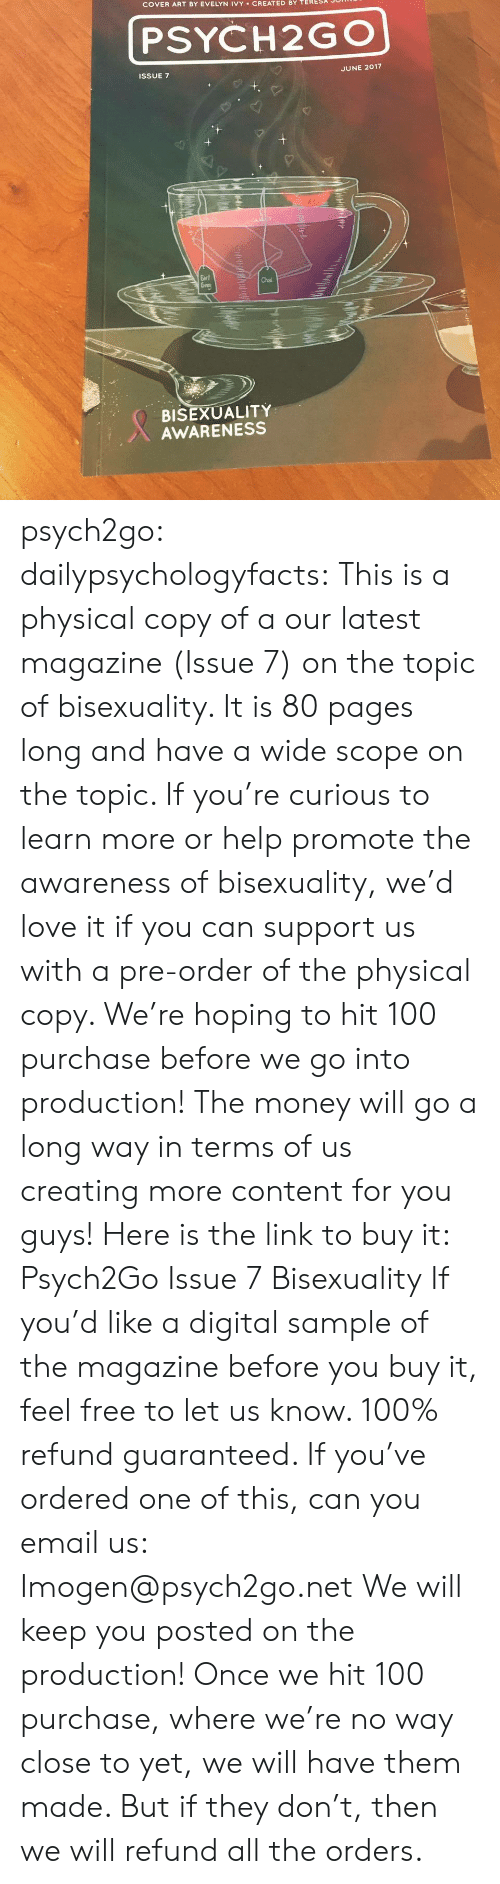 Bisexuality: COVER ART BY EVELYN IVY CREATED BY TERESA  PSYCH2GO  ISSUE 7  JUNE 2017  Earl  Chal  BISEXUALITY  AWARENESS psych2go:  dailypsychologyfacts: This is a physical copy of a our latest magazine (Issue 7) on the topic of bisexuality.  It is 80 pages long and have a wide scope on the topic. If you're curious to learn more or help promote the awareness of bisexuality, we'd love it if you can support us with a pre-order of the physical copy. We're hoping to hit 100 purchase before we go into production! The money will go a long way in terms of us creating more content for you guys!  Here is the link to buy it: Psych2Go Issue 7 Bisexuality If you'd like a digital sample of the magazine before you buy it, feel free to let us know. 100% refund guaranteed.   If you've ordered one of this, can you email us: Imogen@psych2go.net We will keep you posted on the production! Once we hit 100 purchase, where we're no way close to yet, we will have them made. But if they don't, then we will refund all the orders.